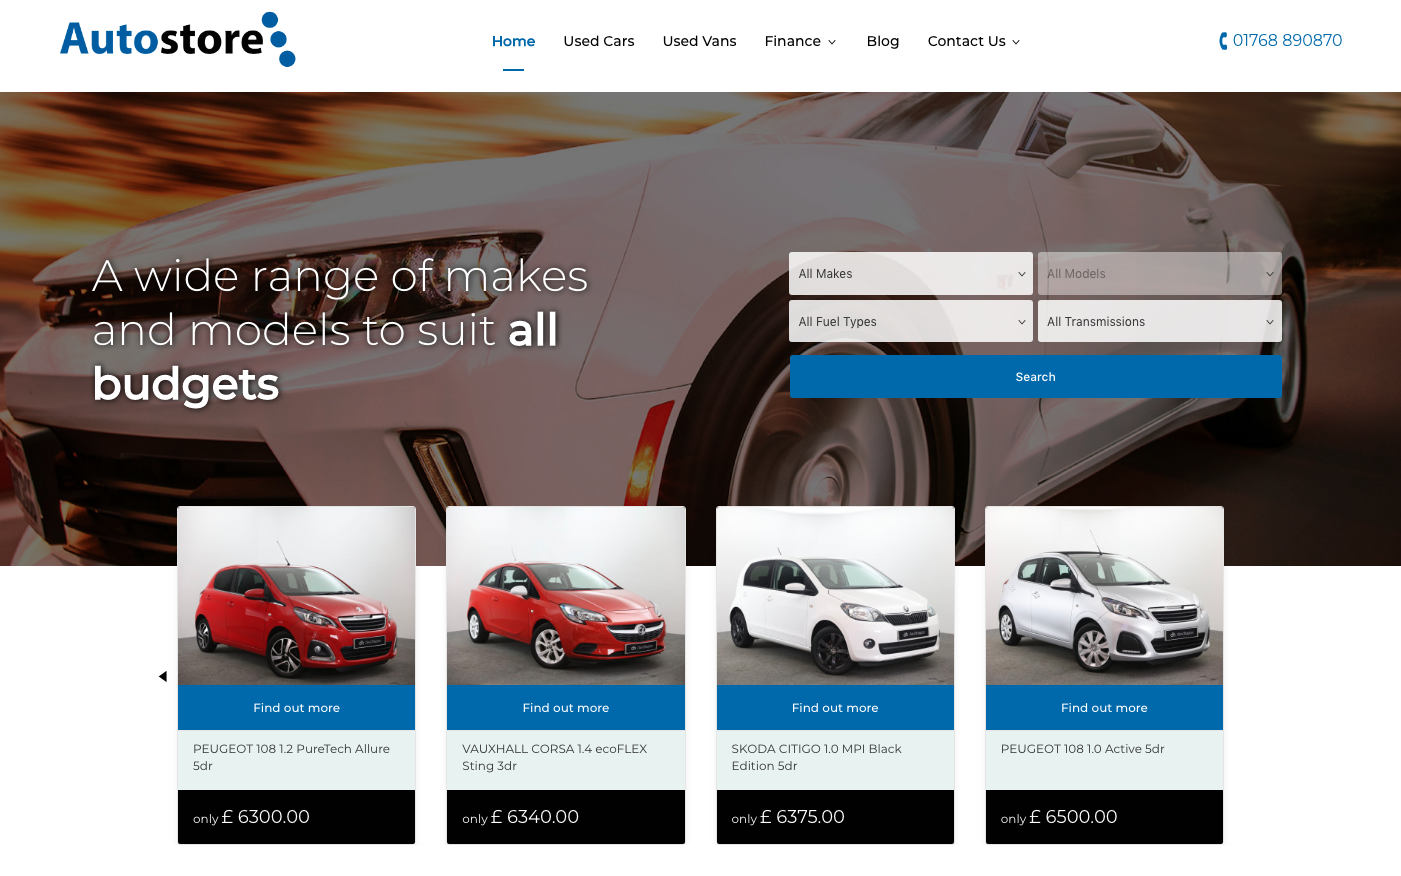 Screenshot of new Autostore website home page: A wide range of makes and models to suit all budgets